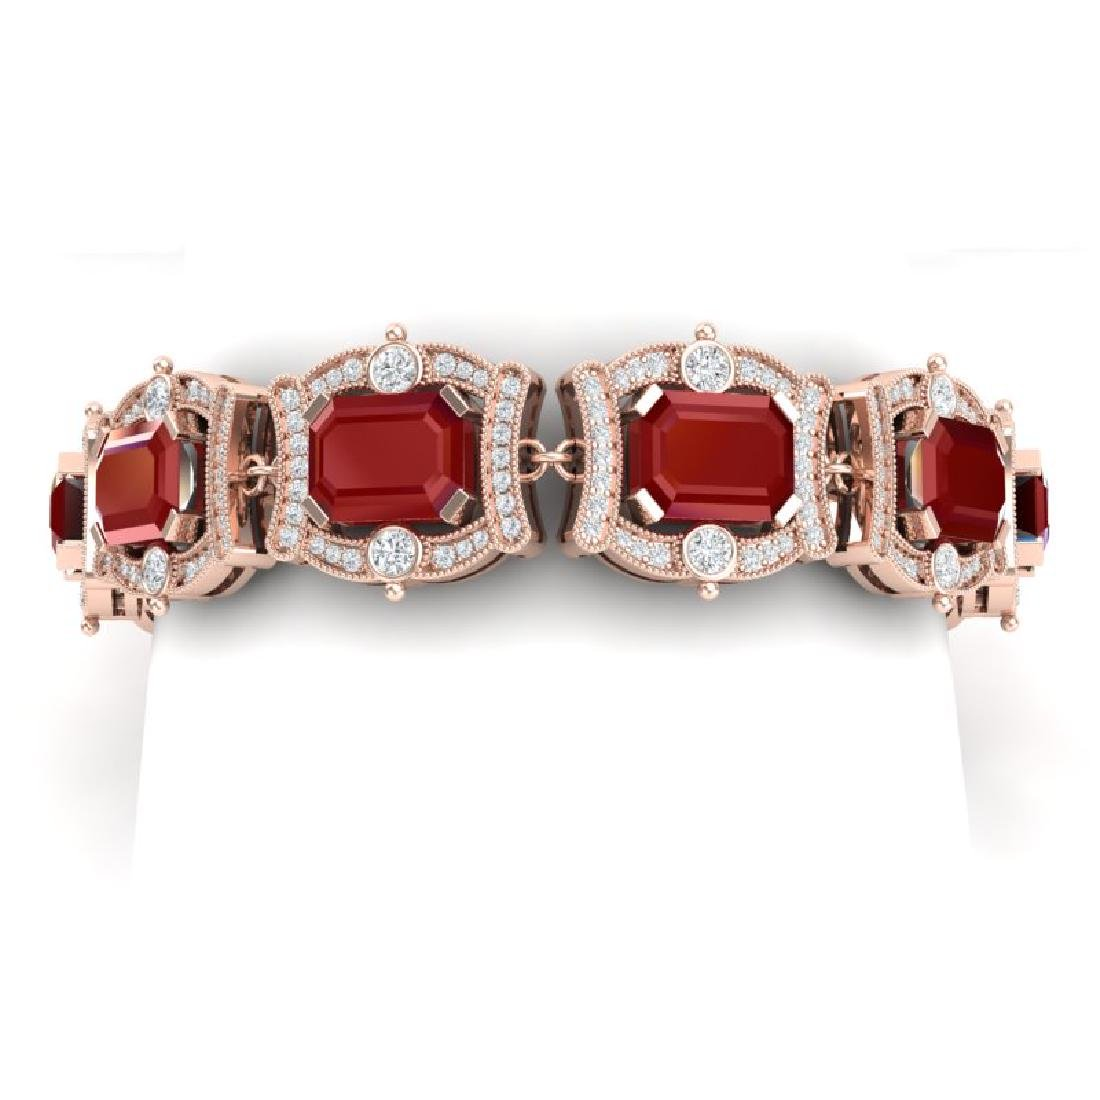 43.87 CTW Royalty Ruby & VS Diamond Bracelet 18K Rose